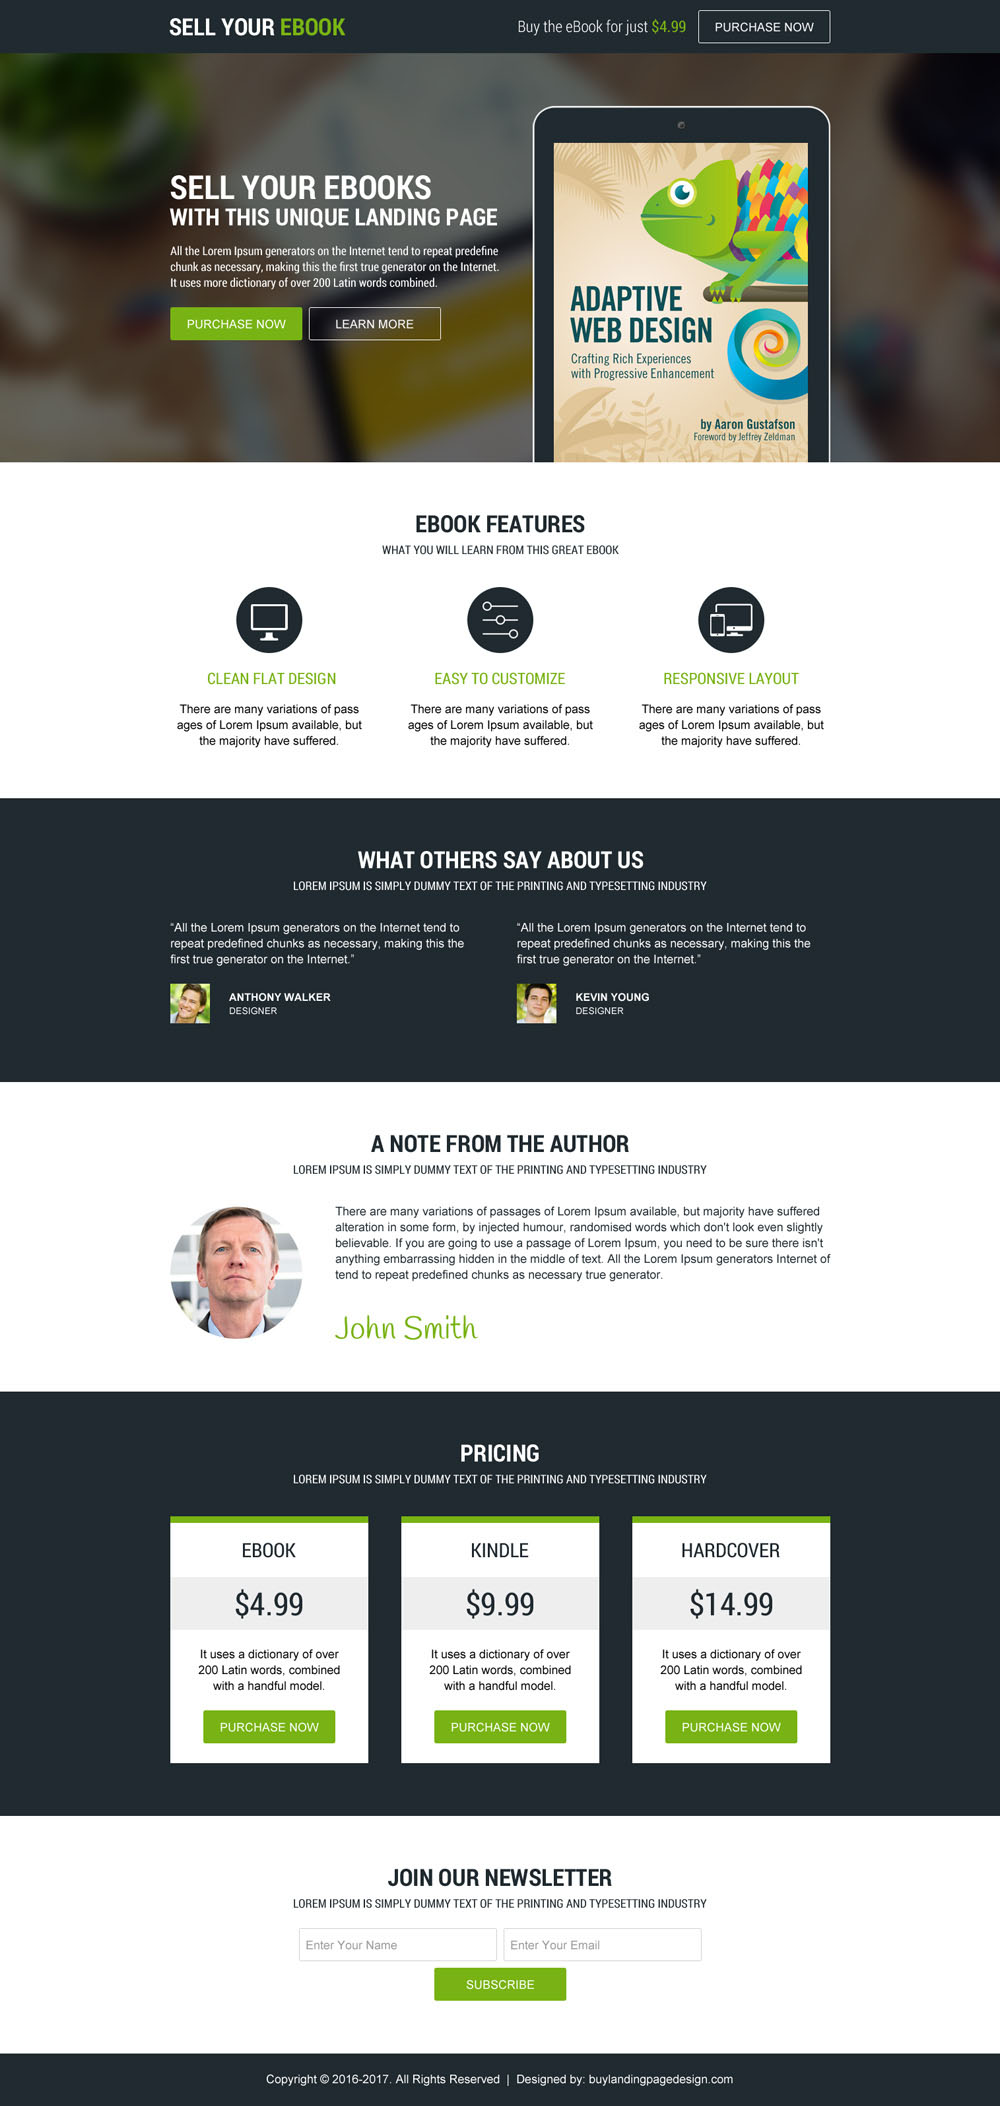 sell-your-ebook-landing-page-design-templates-that-converts-023